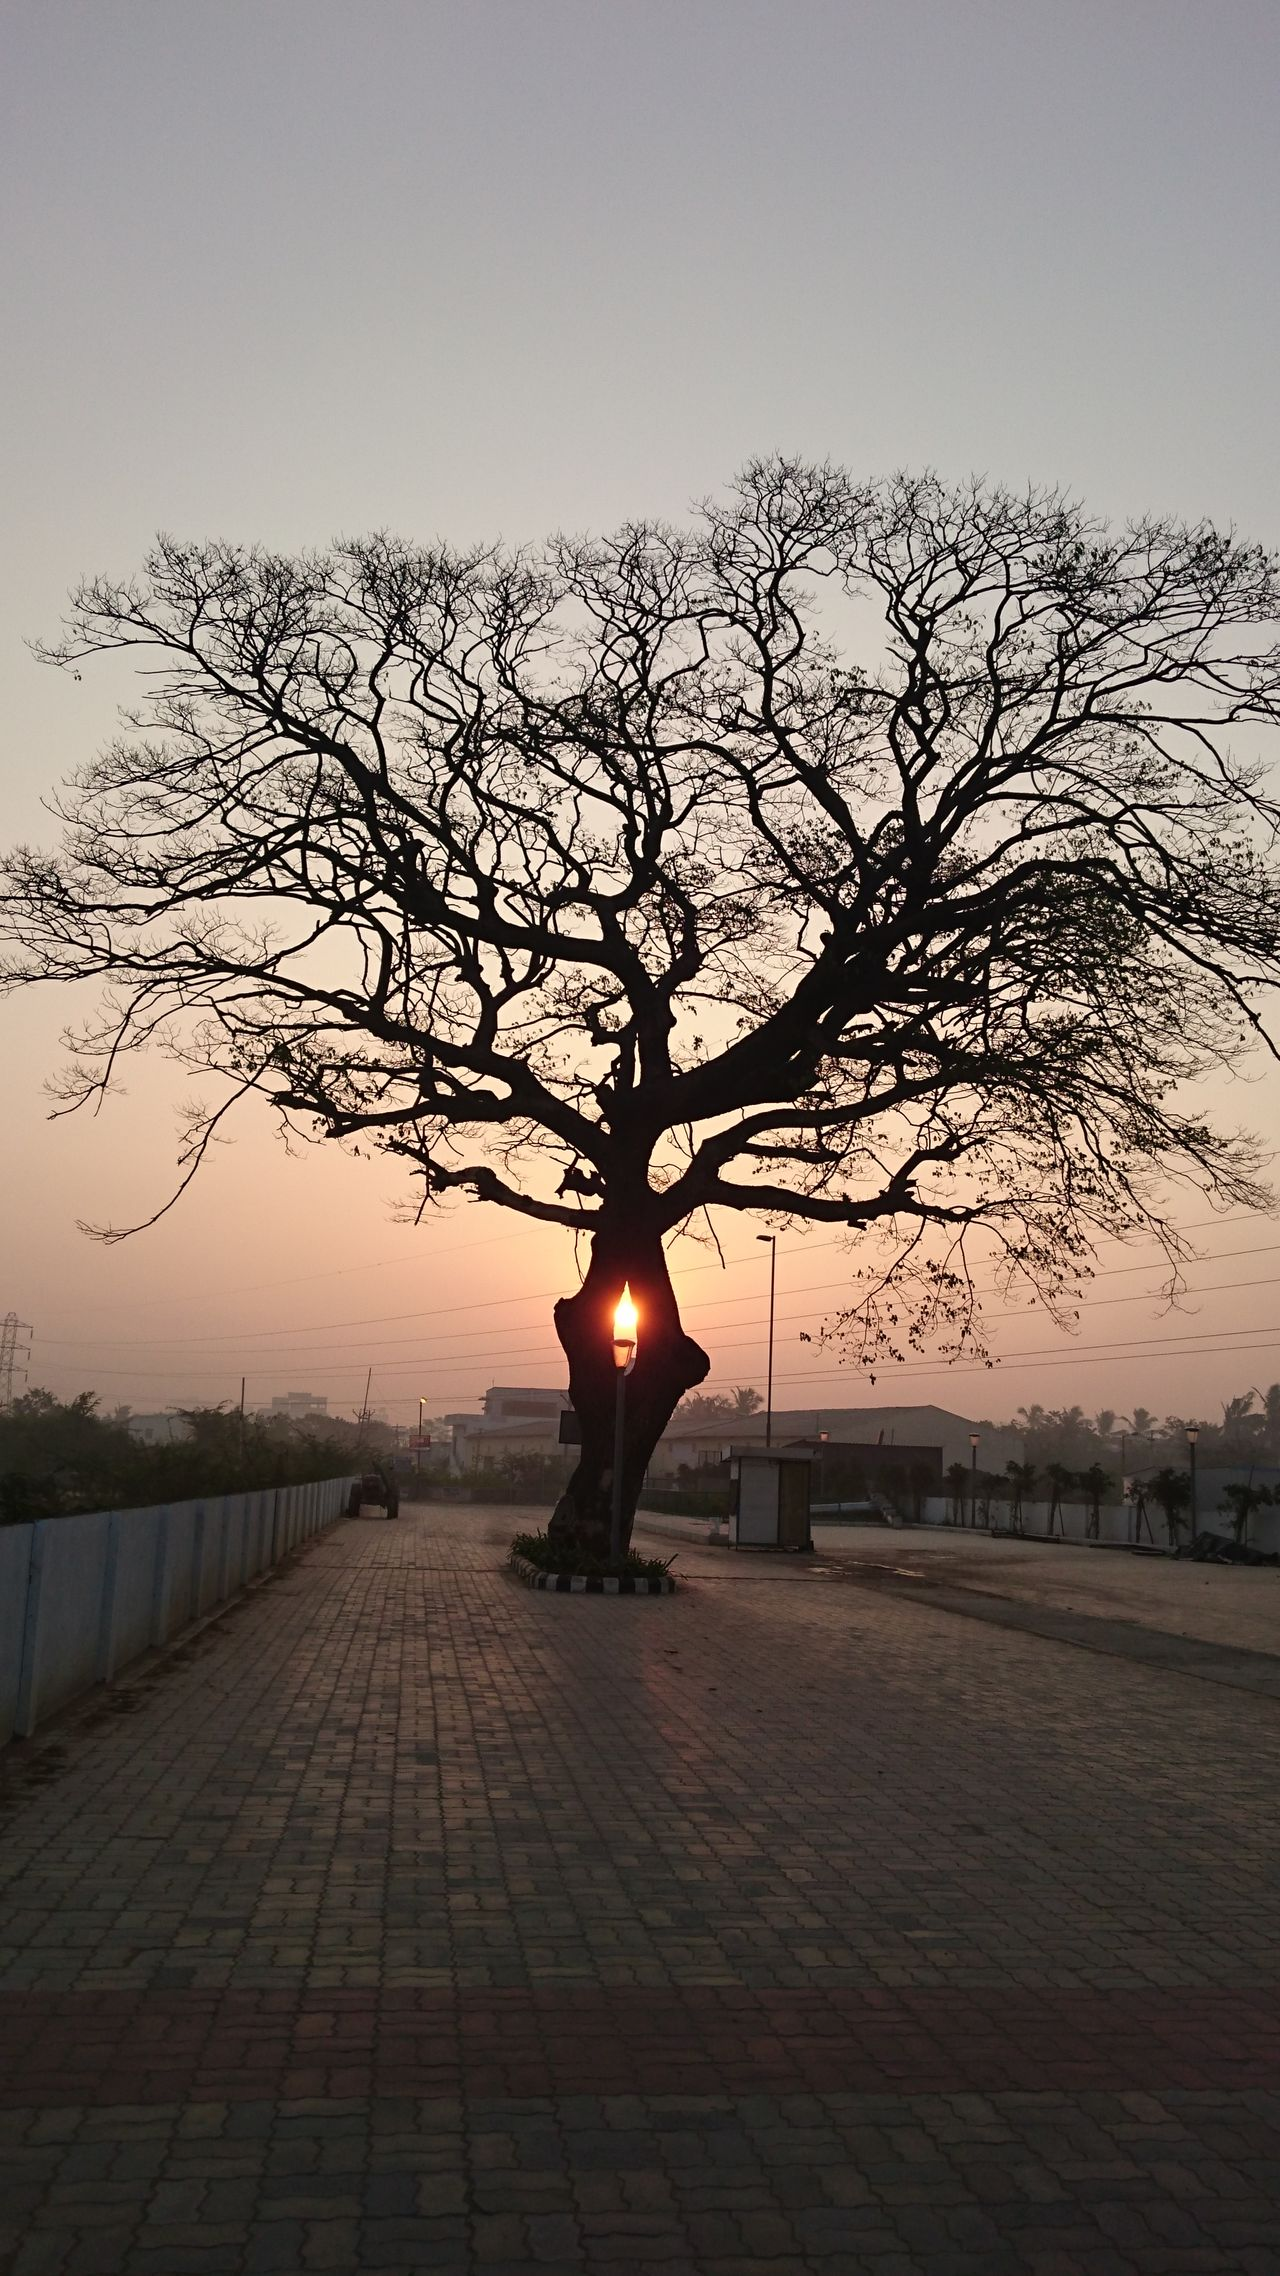 Bare Tree Day Nature No People Outdoors Sky Sunset The City Light